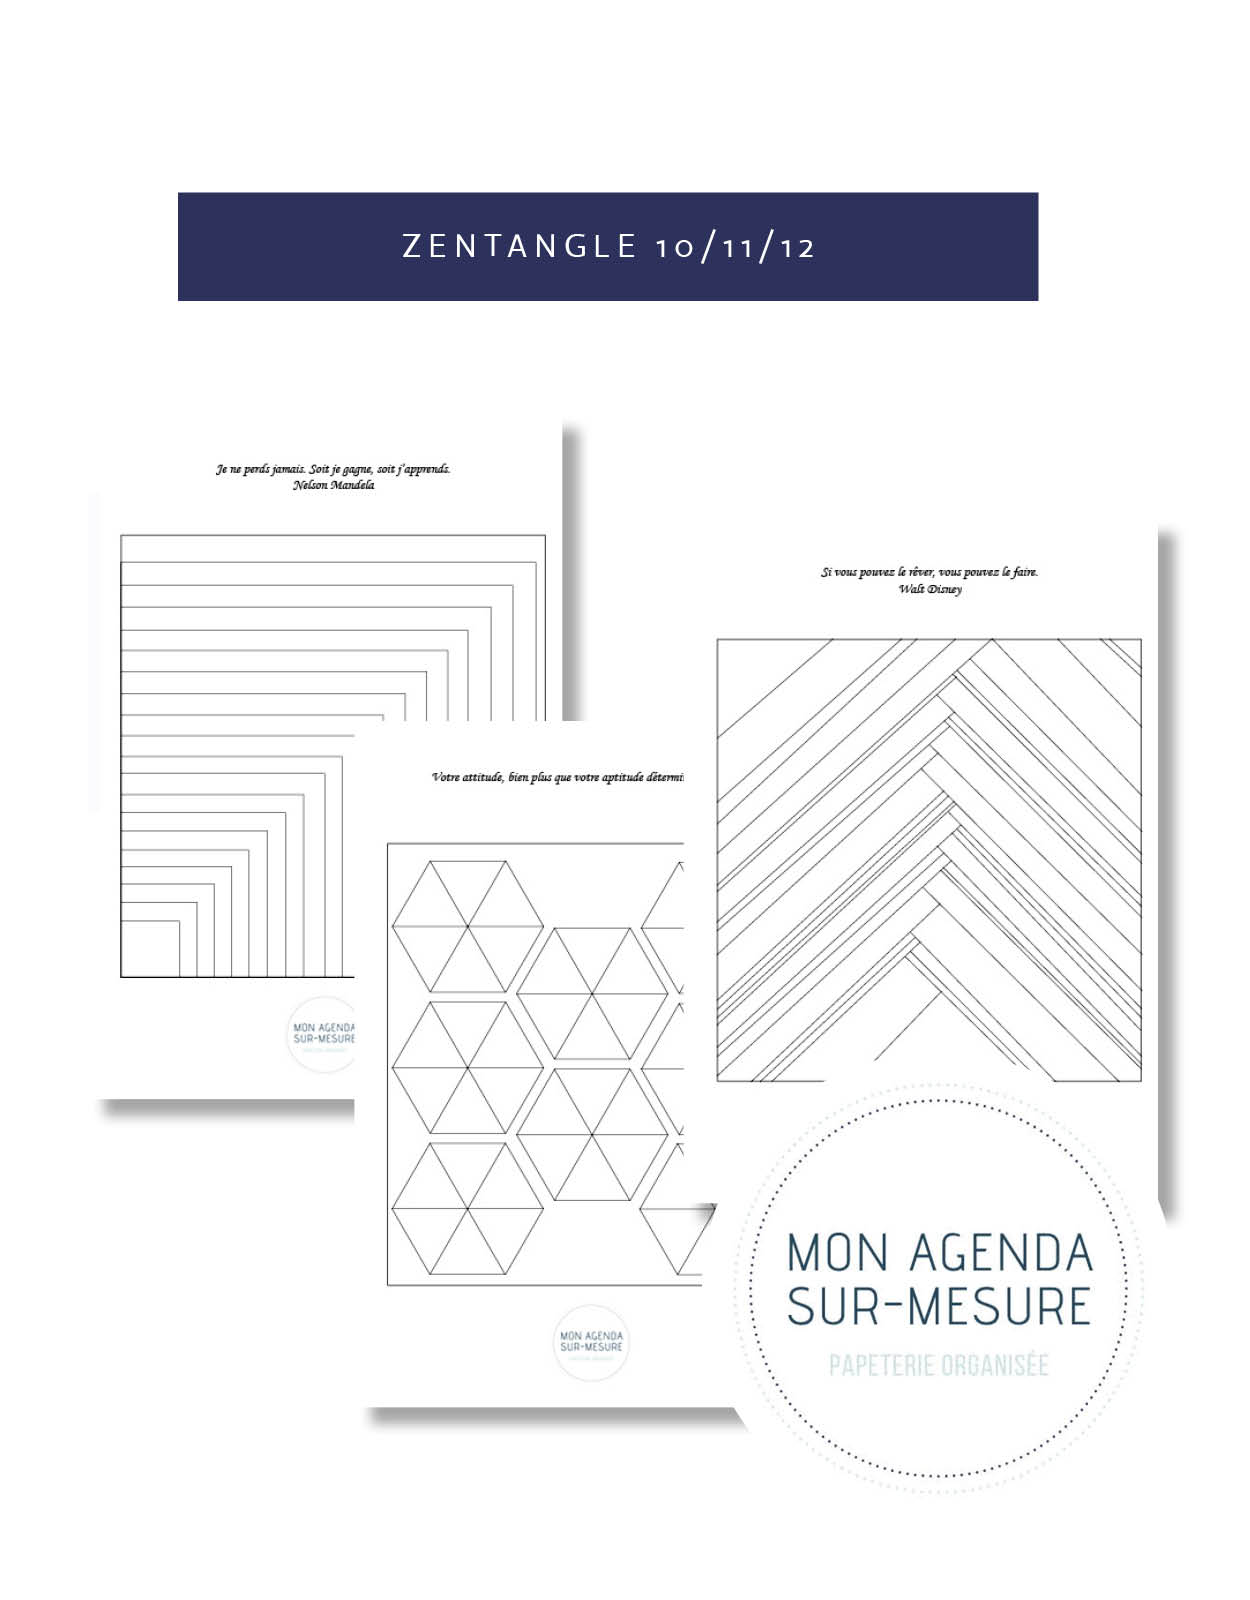 page-agenda-sur-mesure-zentangle